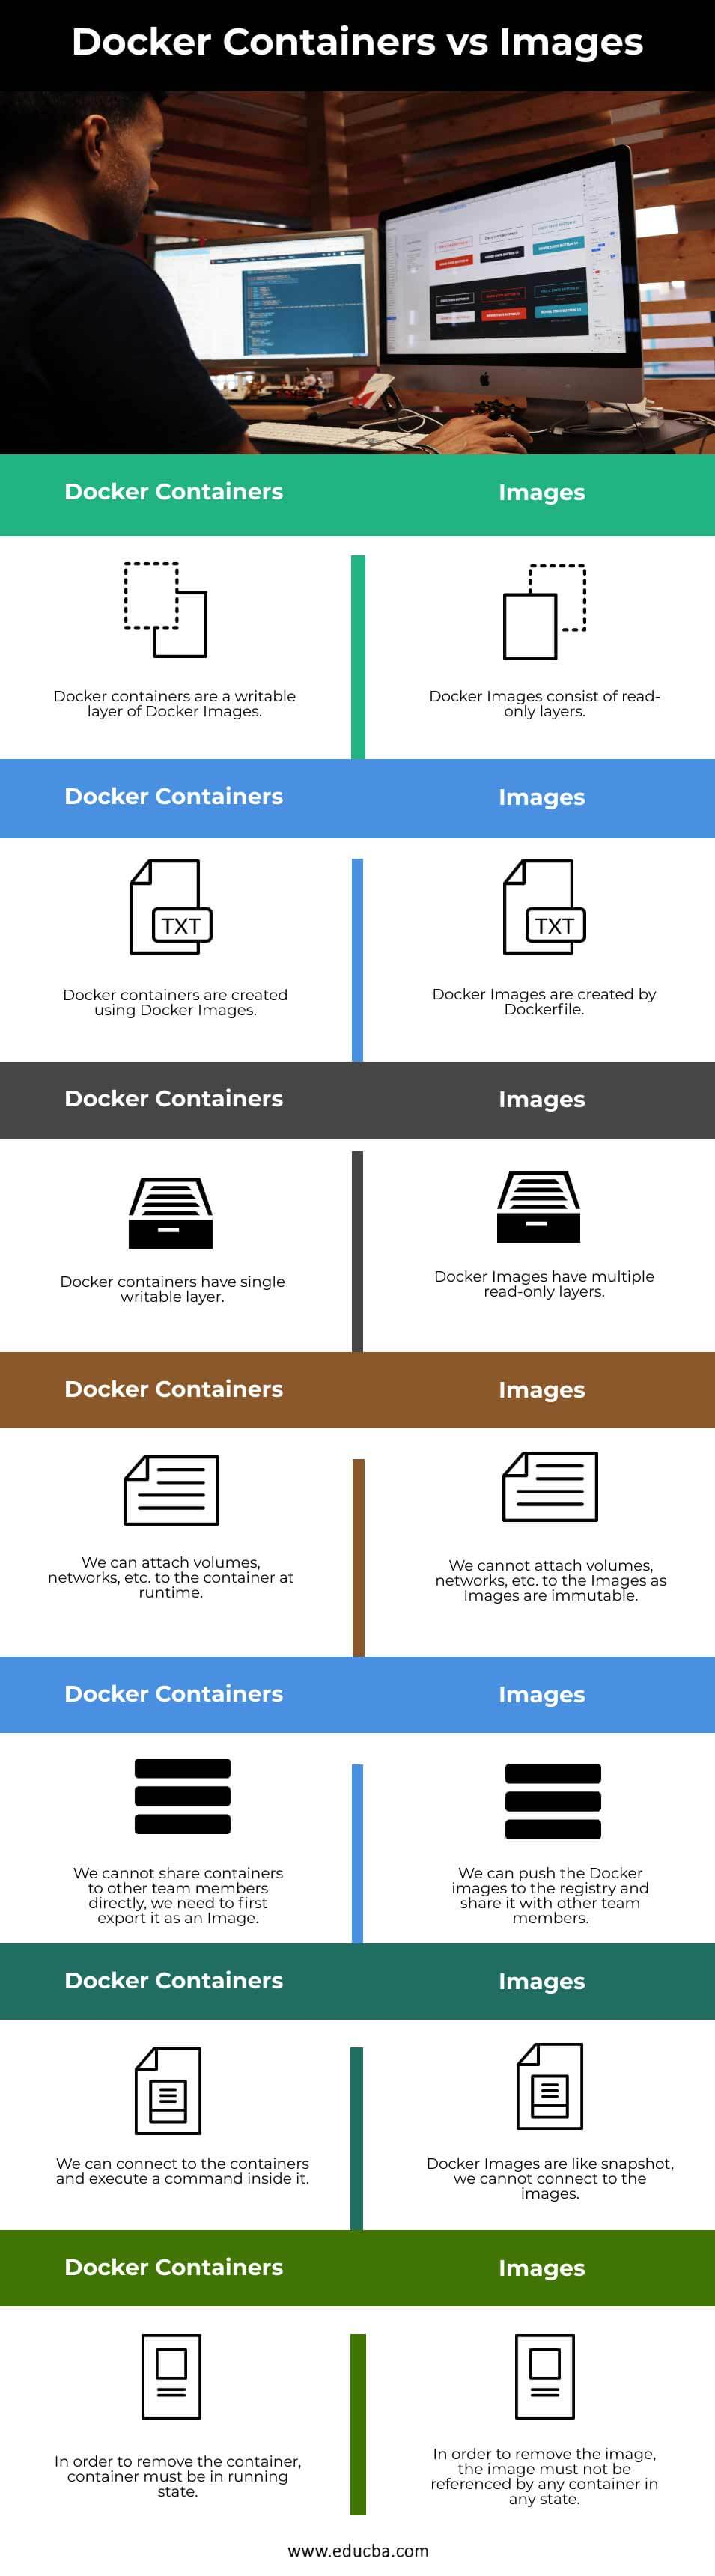 Docker-Containers-vs-Images-info